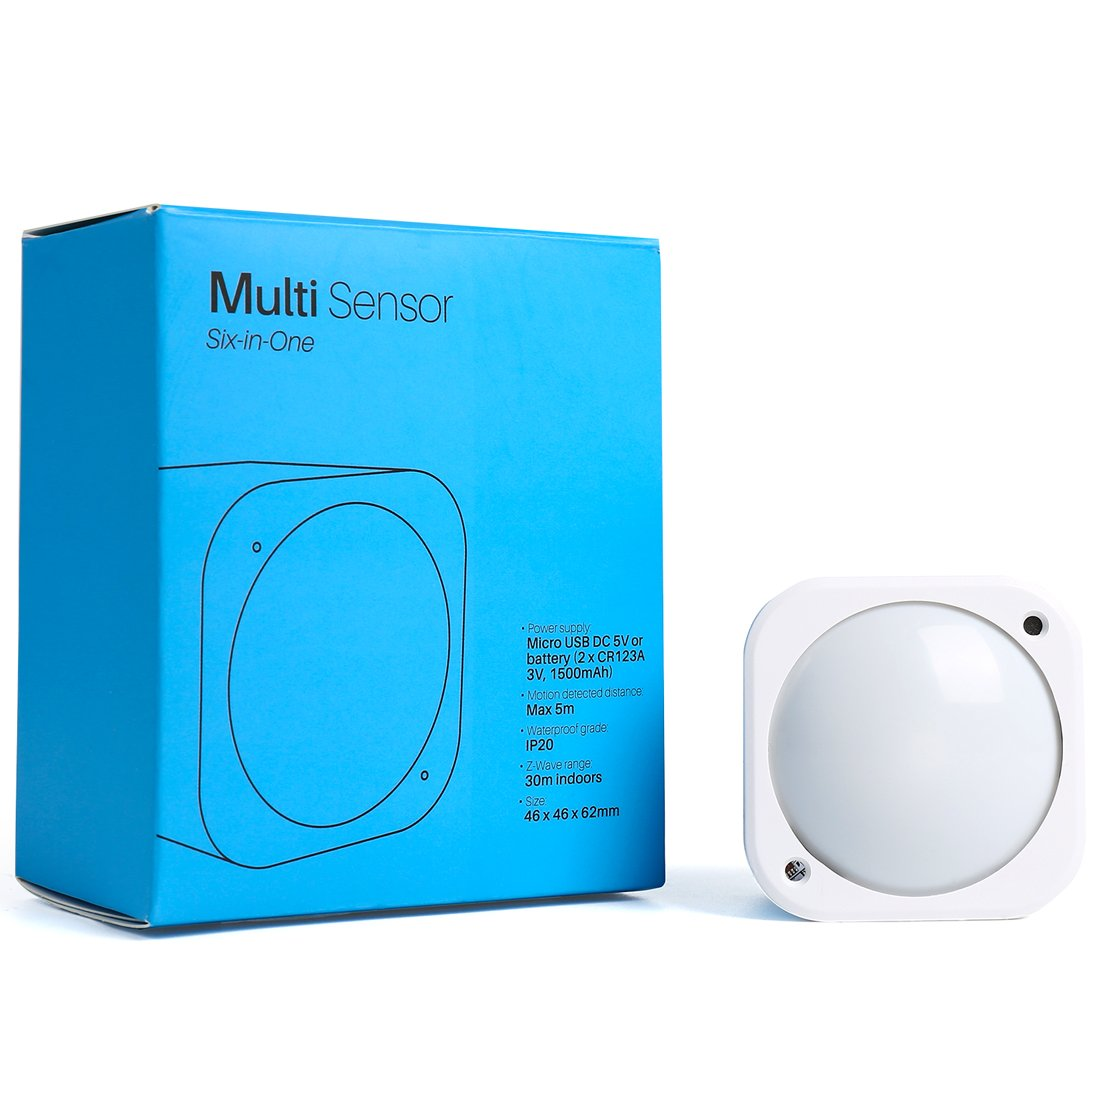 Multisensor 6, Z-Wave Plus 6-in1 Motion, Temperature, Humidity, Light, UV, Vibration Sensor